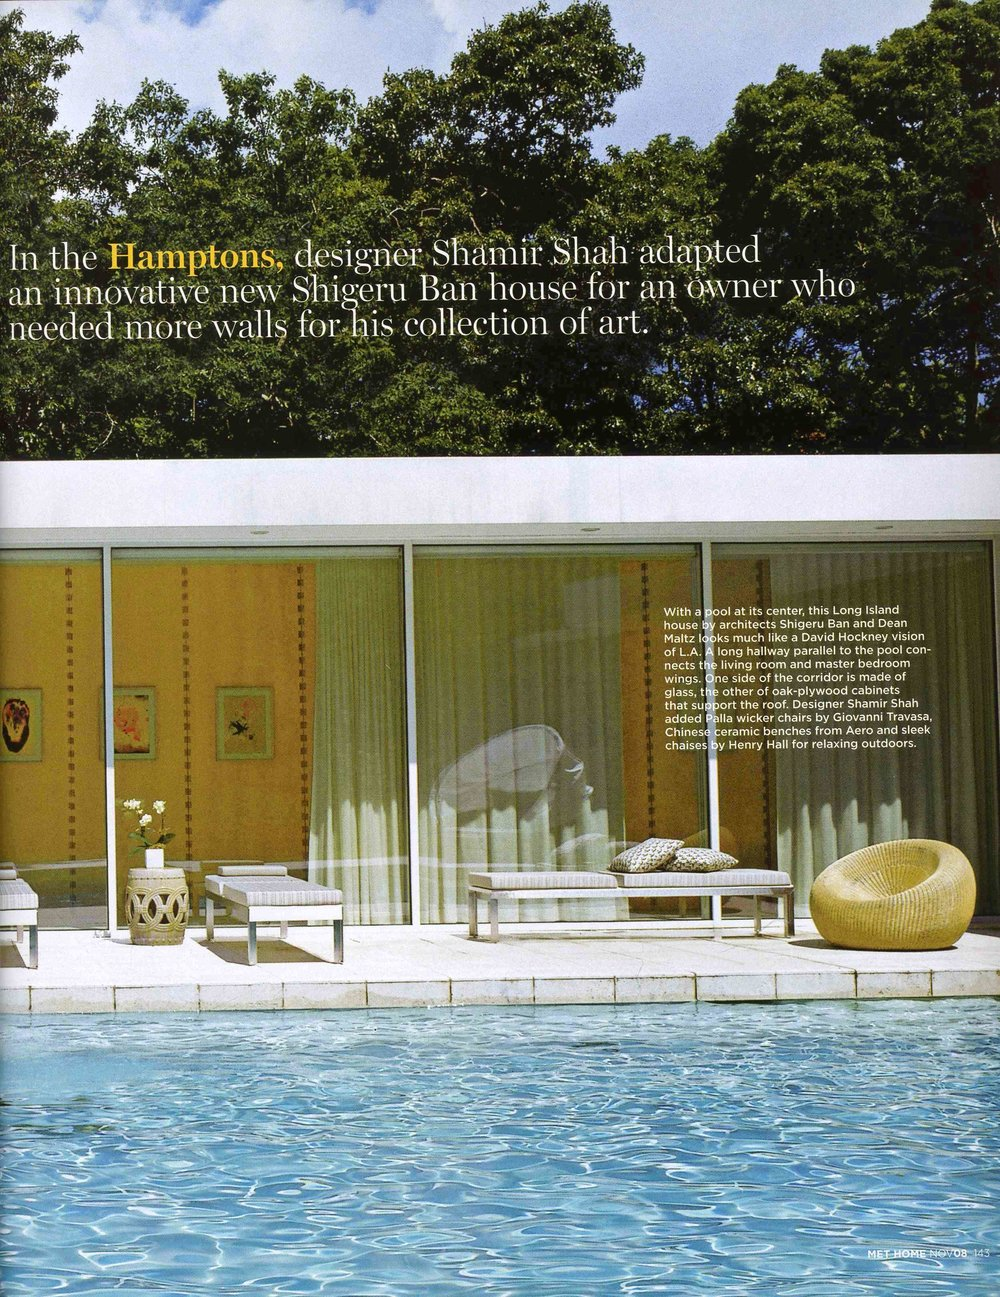 Met Home_Nov 08_Hamptons House_Full Article_Page_03.jpg